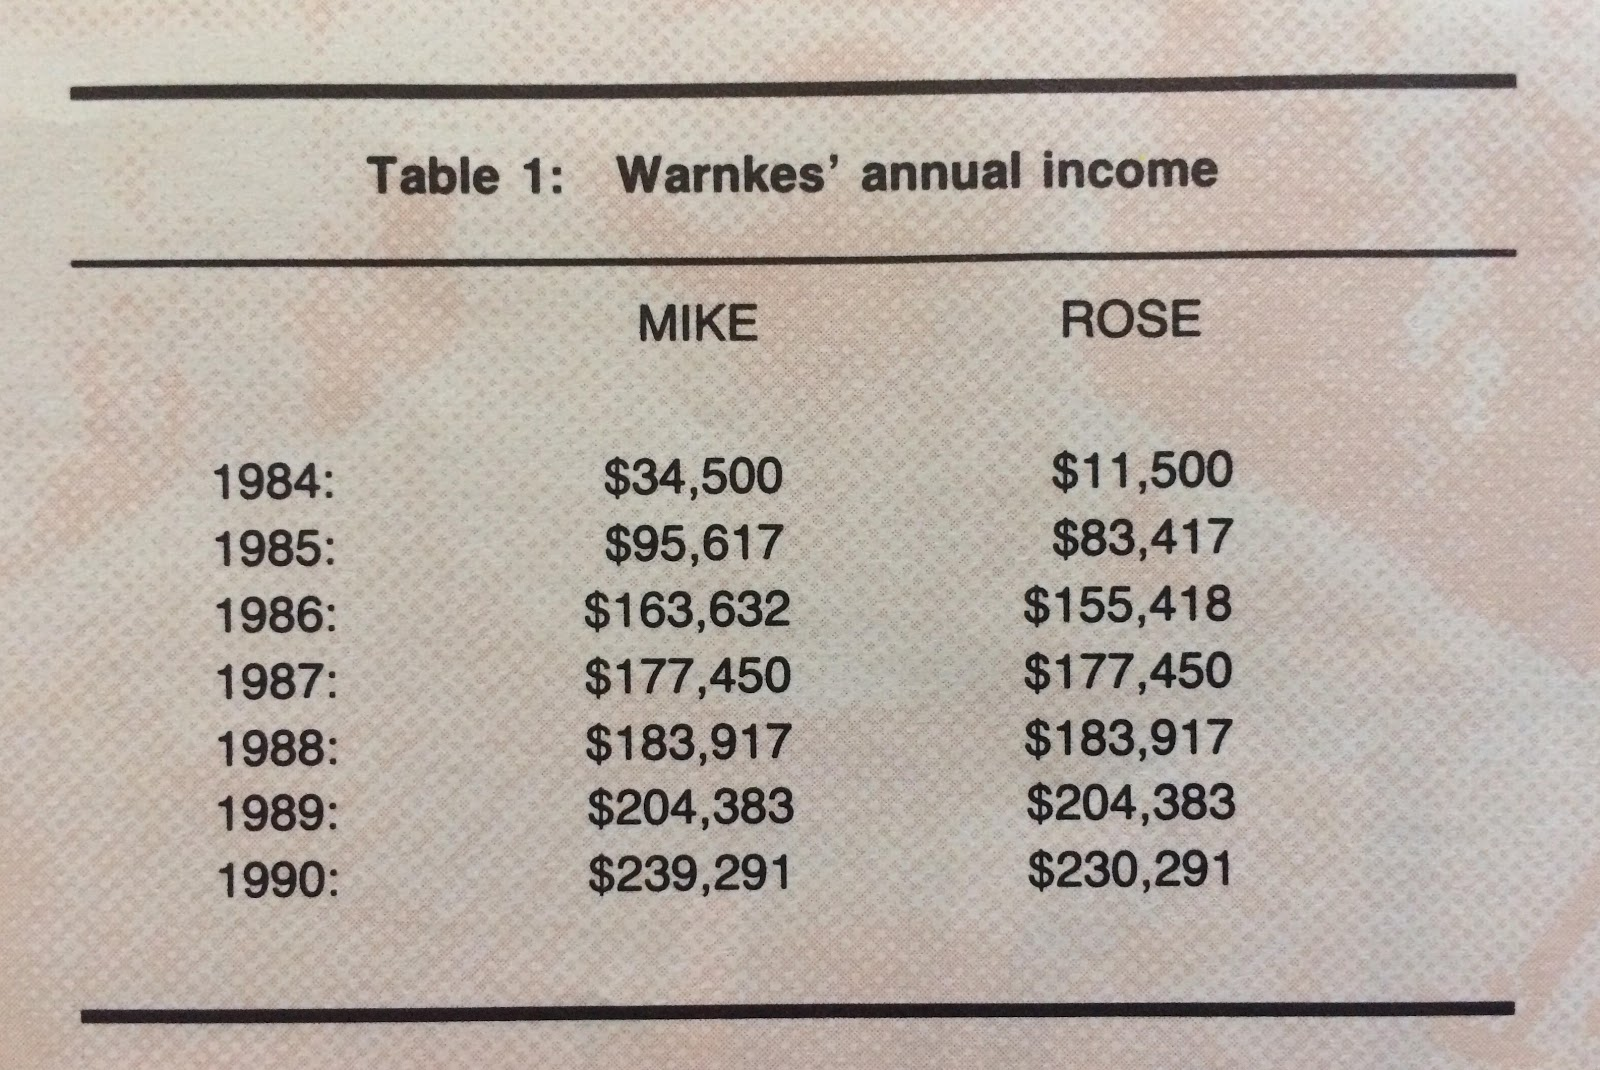 Mike and Rose's income